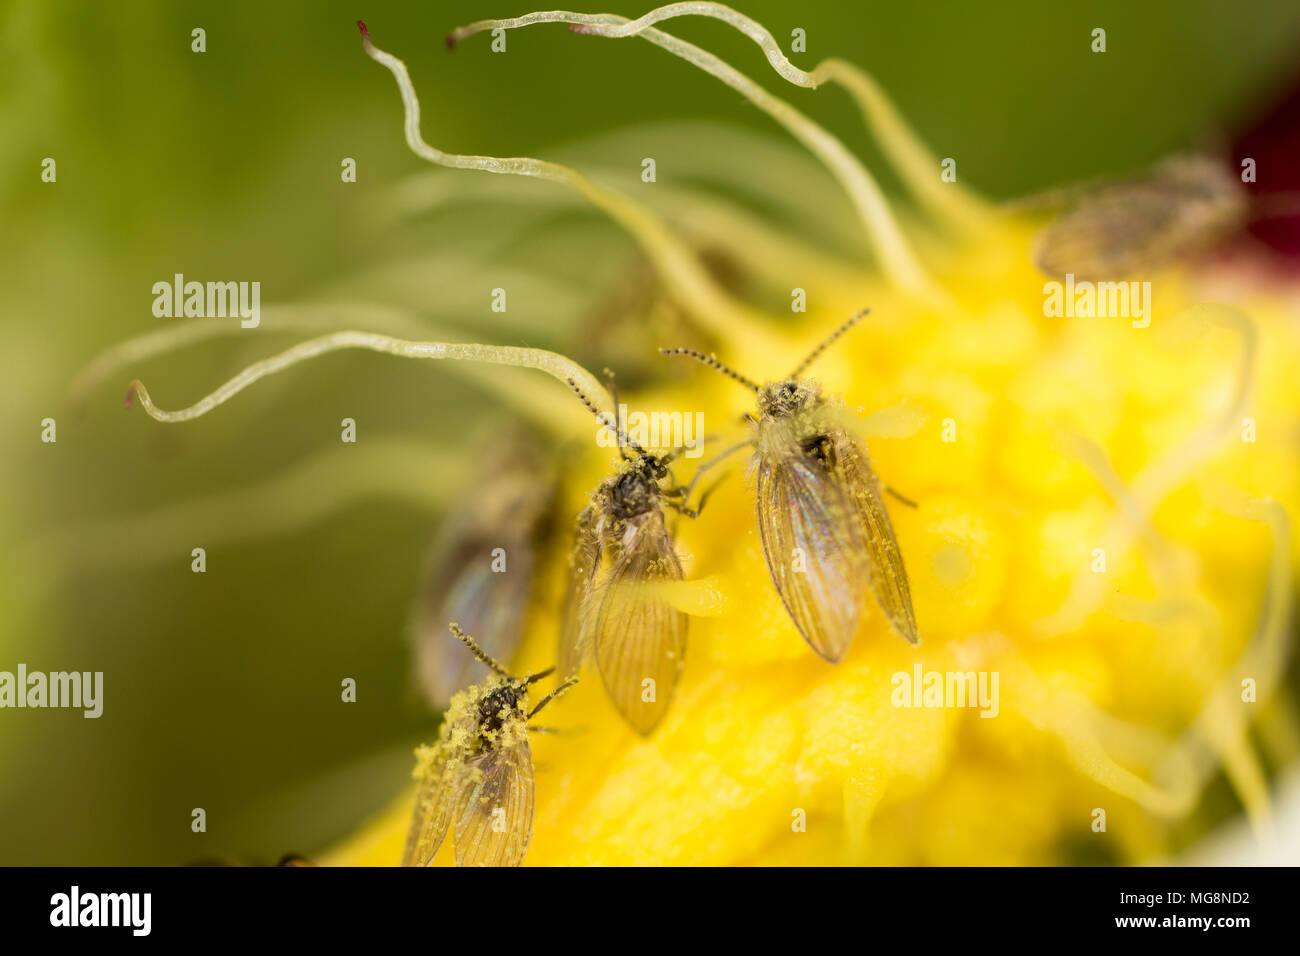 A close-up picture showing tiny owl midges, or owl flies, covered in pollen in the hairs at the base of the spadix in a cuckoo pint plant Arum maculat - Stock Image